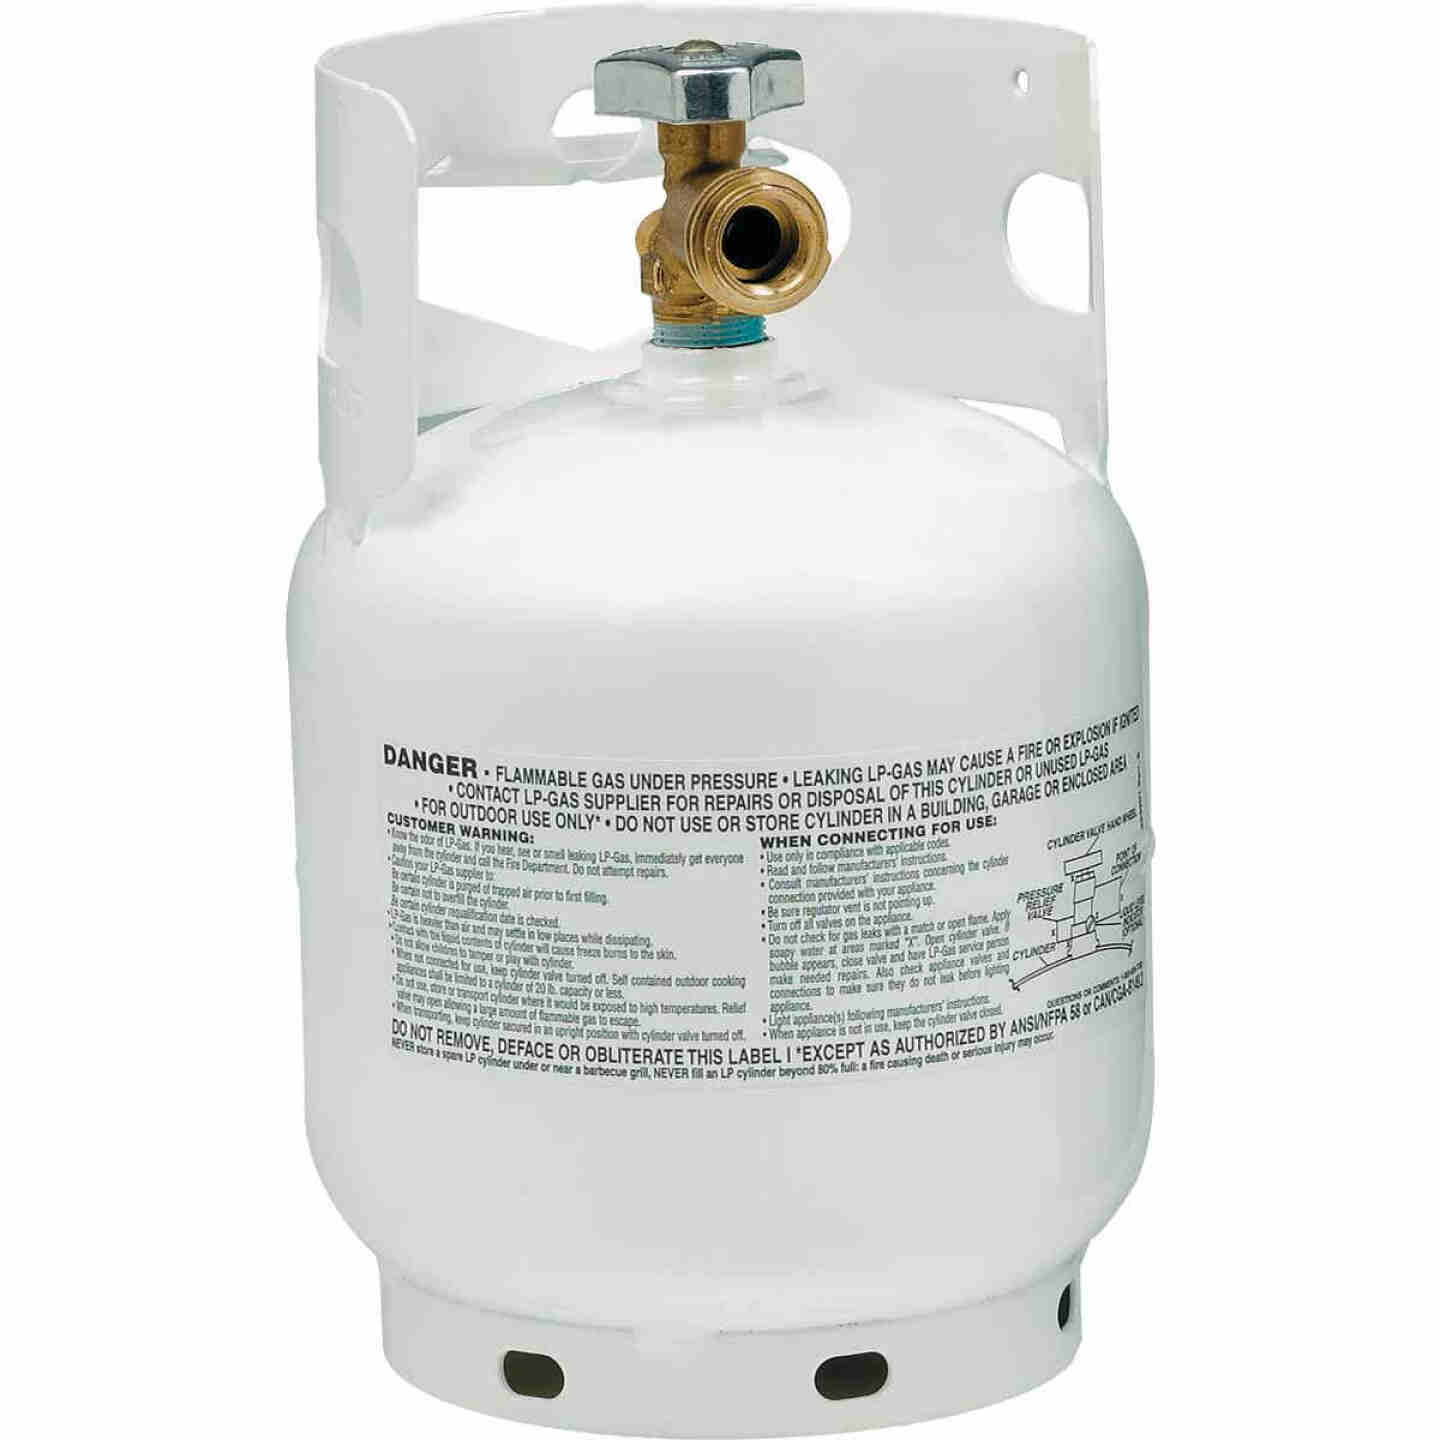 Manchester Tank and Equipment 5 Lb. Capacity Steel TC/DOT Vertical LP Propane Tank Image 1